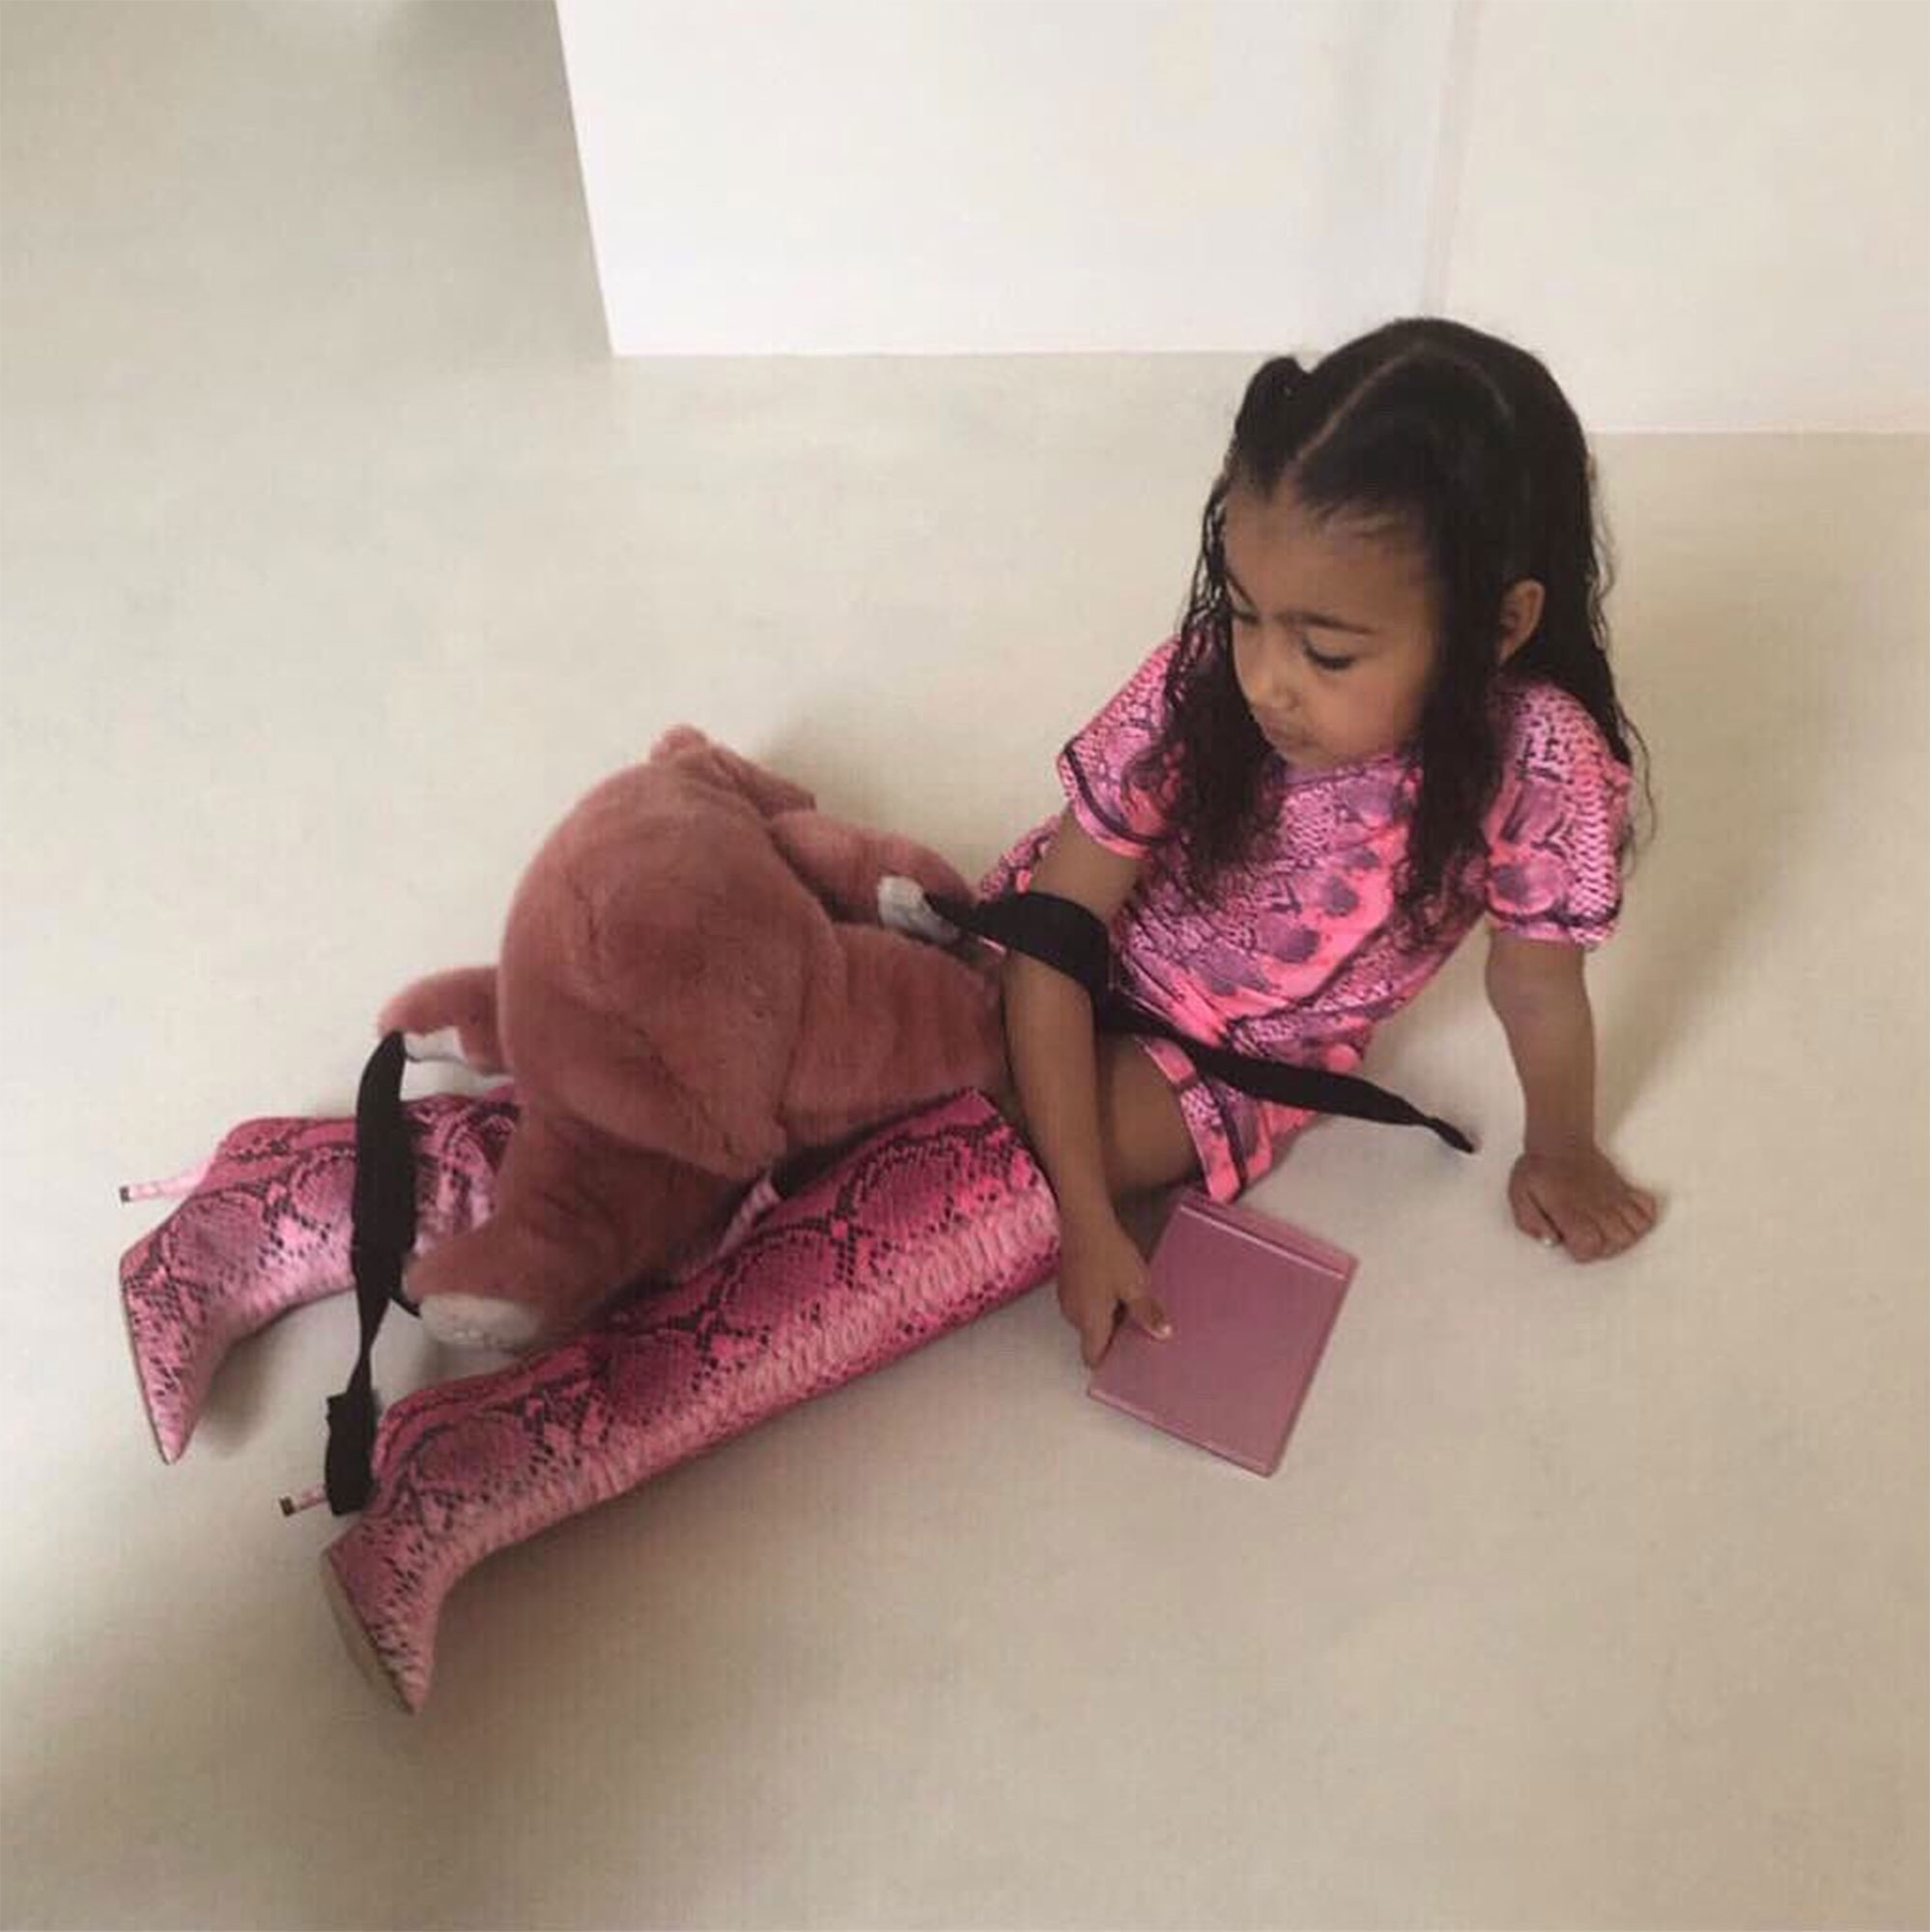 6acb9a5bb Kim Kardashian Tells Daughter North West She Can't Wear Her Heels and the  Response Is Too Funny